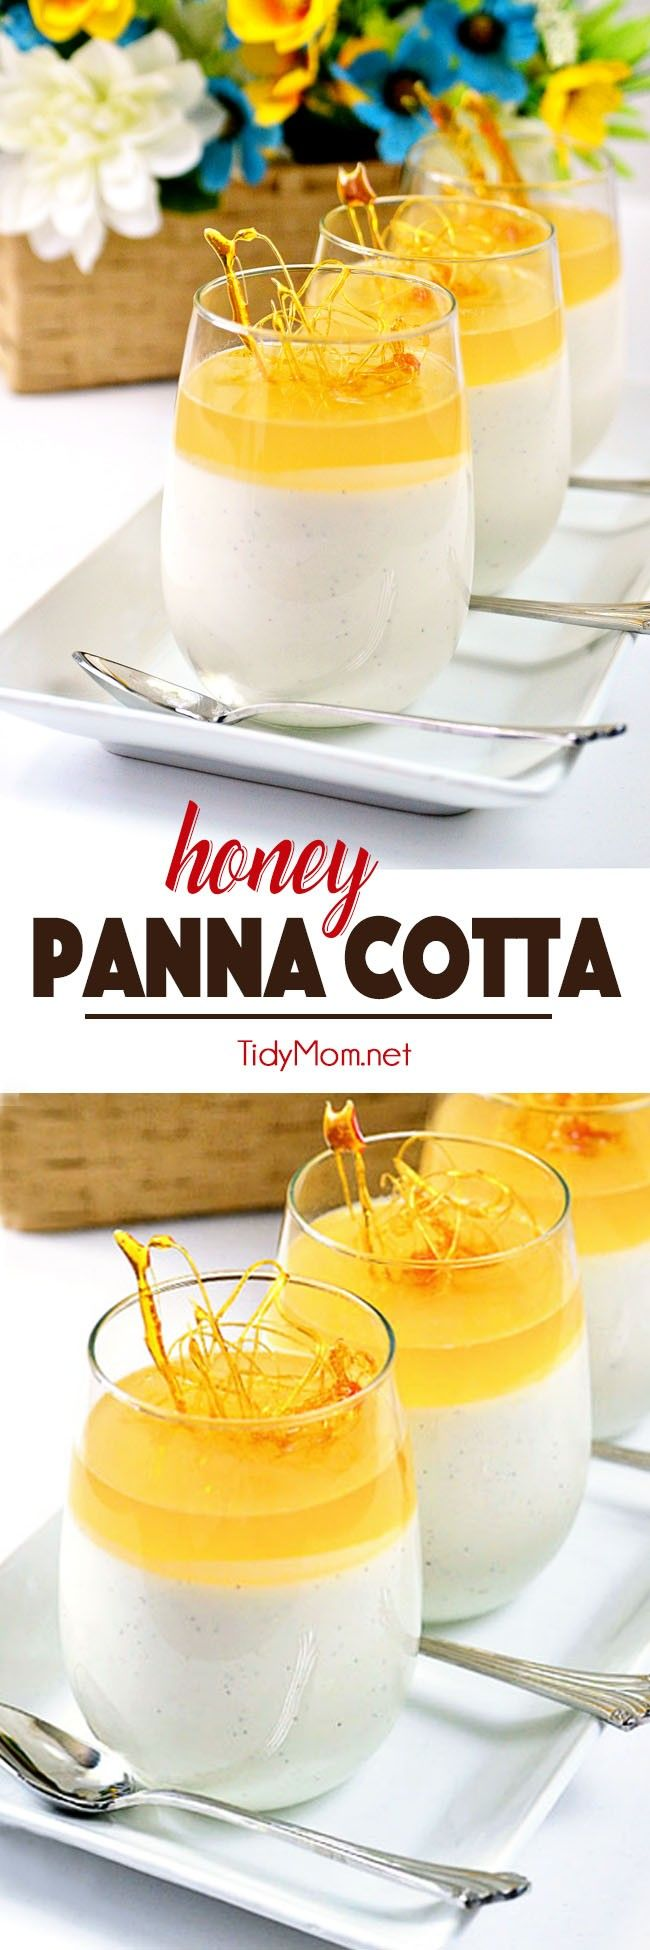 """Honey Panna Cotta looks like a fancy-schmancy dessert, but actually, it only takes a few minutes to prepare and the rest of the time, the fridge does all the work for you, making it a great """"make ahead"""" dessert for a party table, and with it's simple, not too sweet flavor, it would be the perfect ending to a heavy meal. Get this HONEY PANNA COTTA recipe at TidyMom.net"""